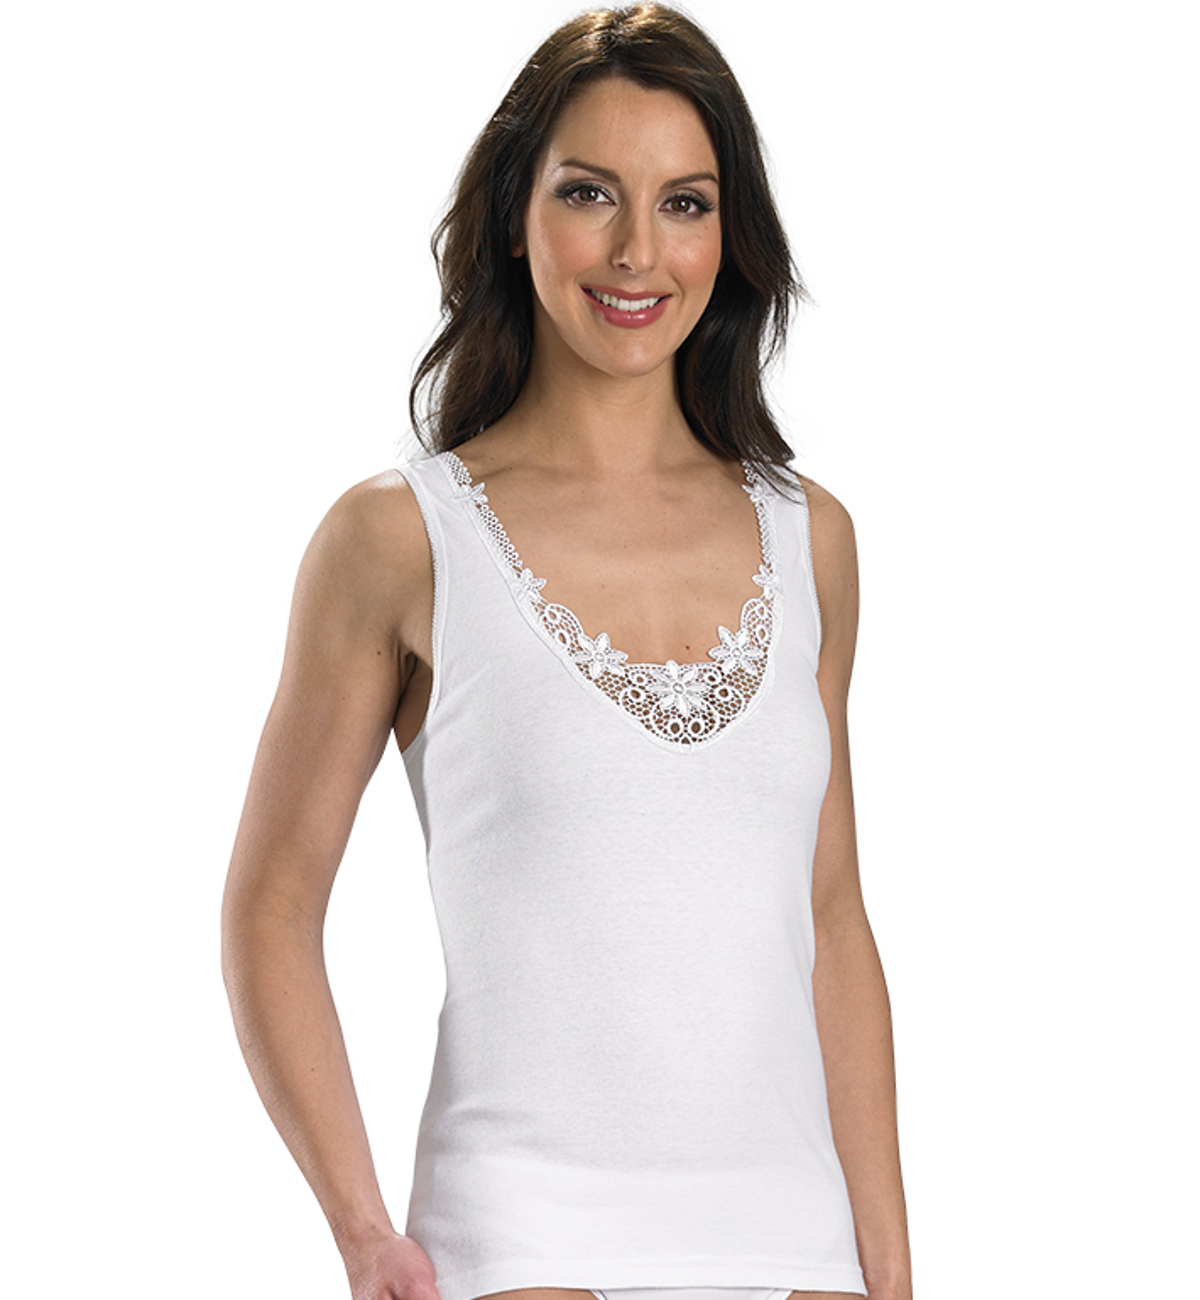 Women Casual Lace Trim Strap Cotton Tank Tops Camisoles $ 12 99 Prime. out of 5 stars Skylety. 3 Pieces Lace Cami Half Lace Camisole Neck Lace Bralette Top for Women Girls $ 18 99 Prime. 5 out of 5 stars 1. Zenana Outfitters. 2 Pack Zenana Women's Plus Lace Trim Tank Tops 2X Black, White $ 16